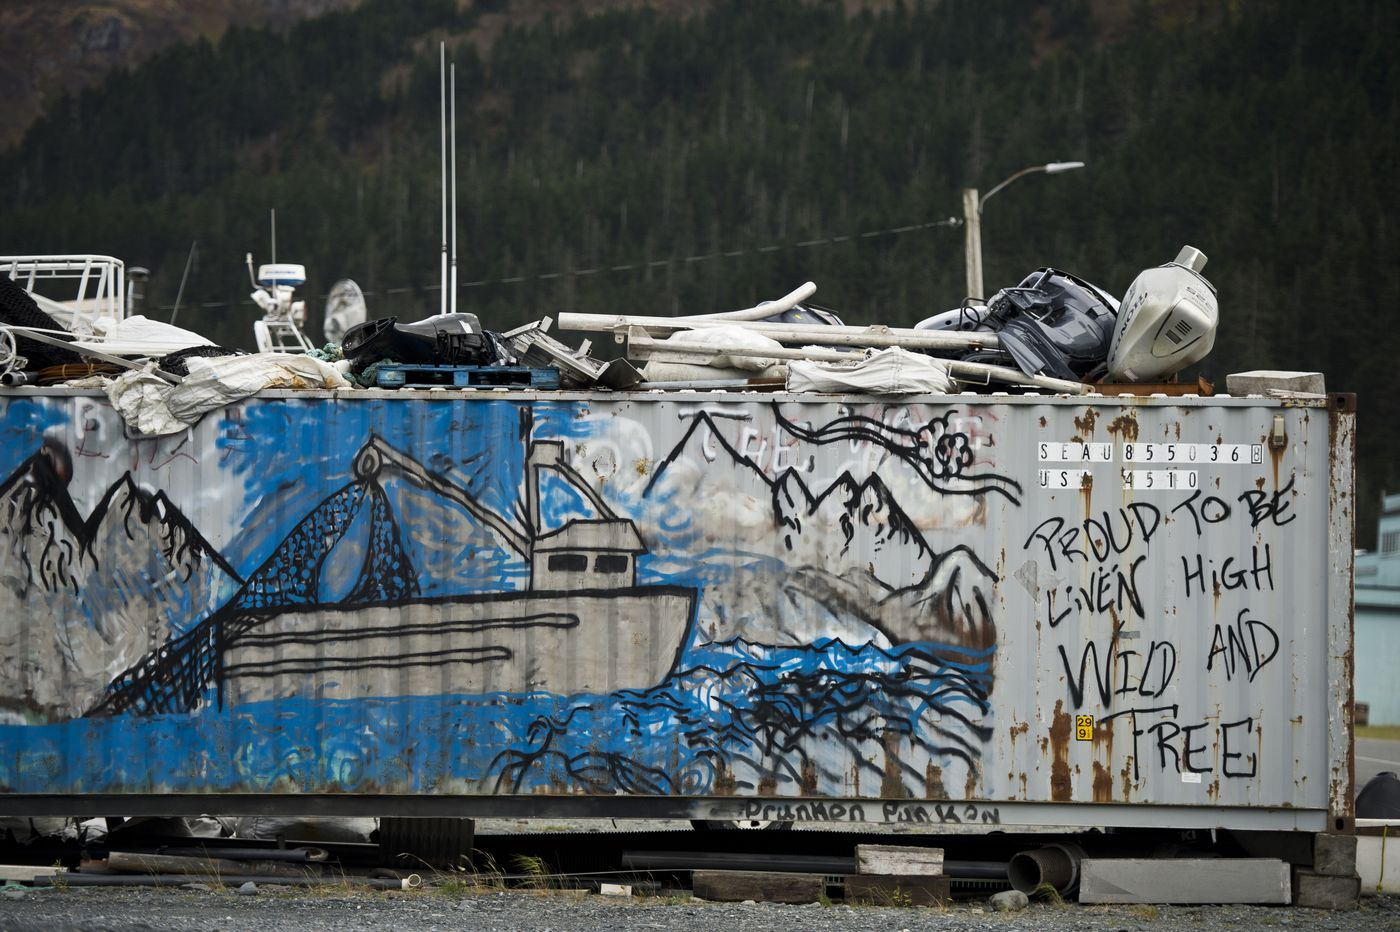 A fishing boat is painted on a storage container in Whittier on Oct. 10. (Marc Lester / Alaska Dispatch News)